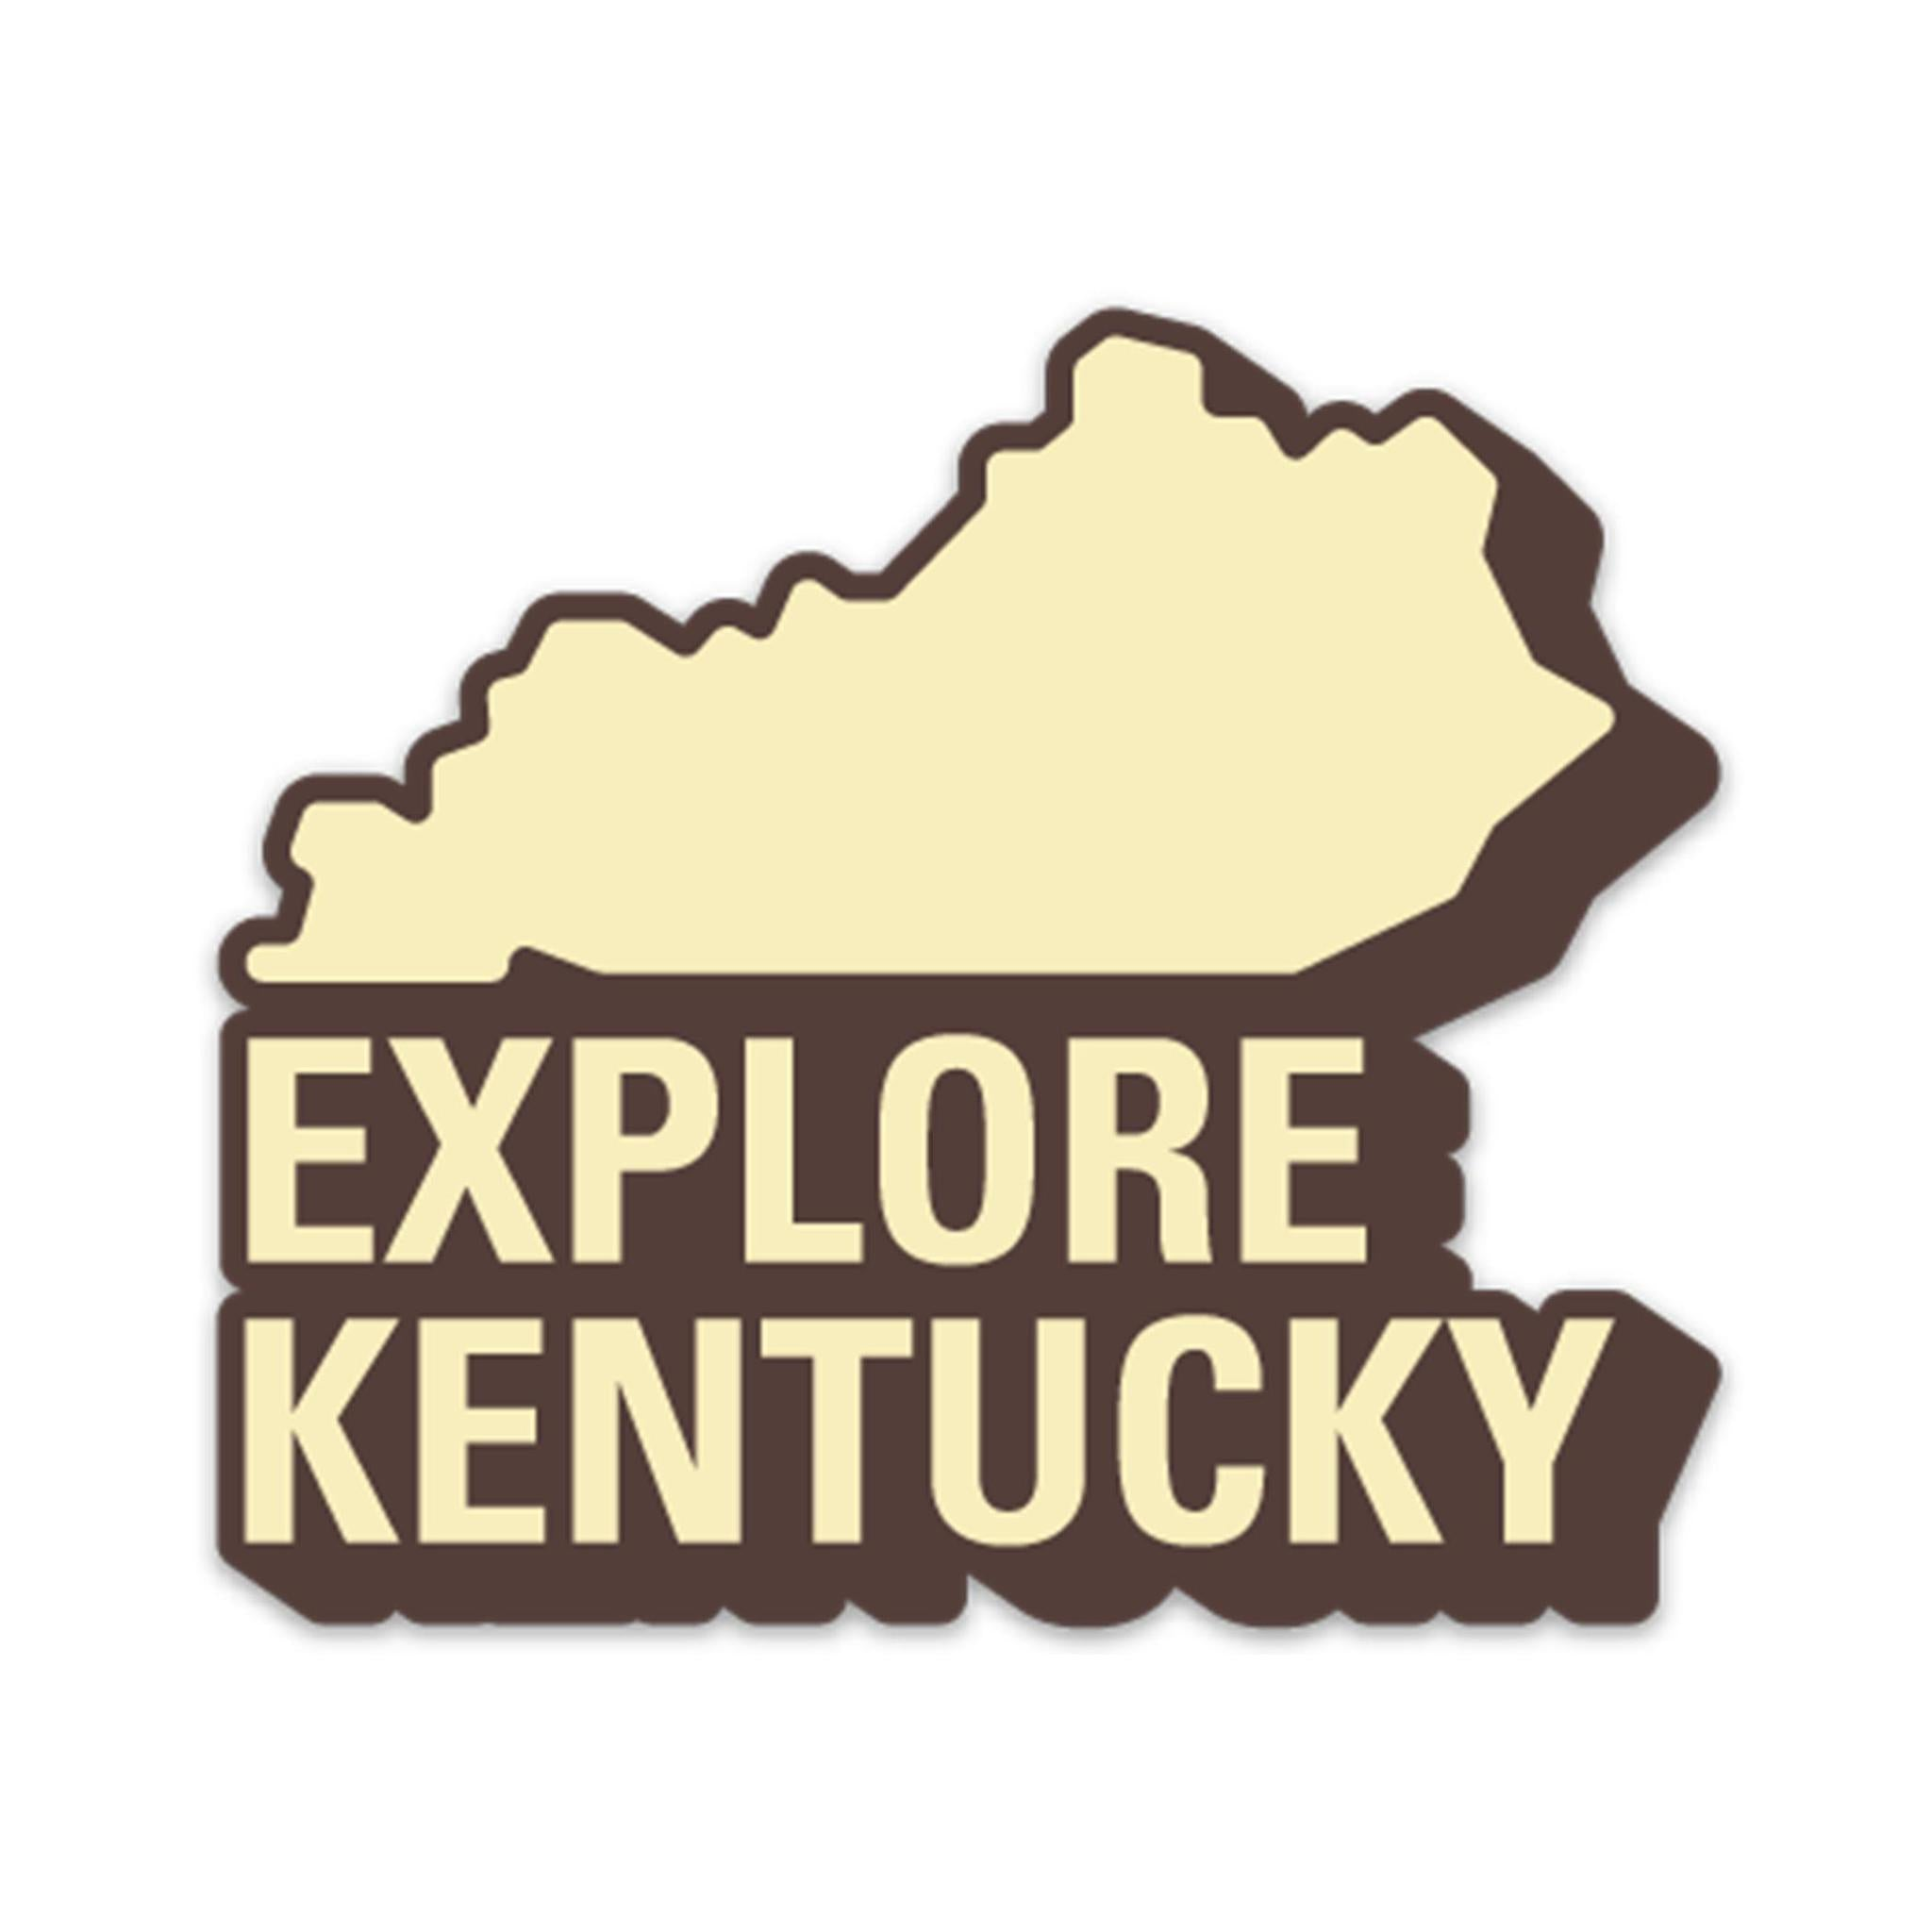 Explore Kentucky No. 1 Sticker (Trailhead Brown)-Stickers-KY for KY Store